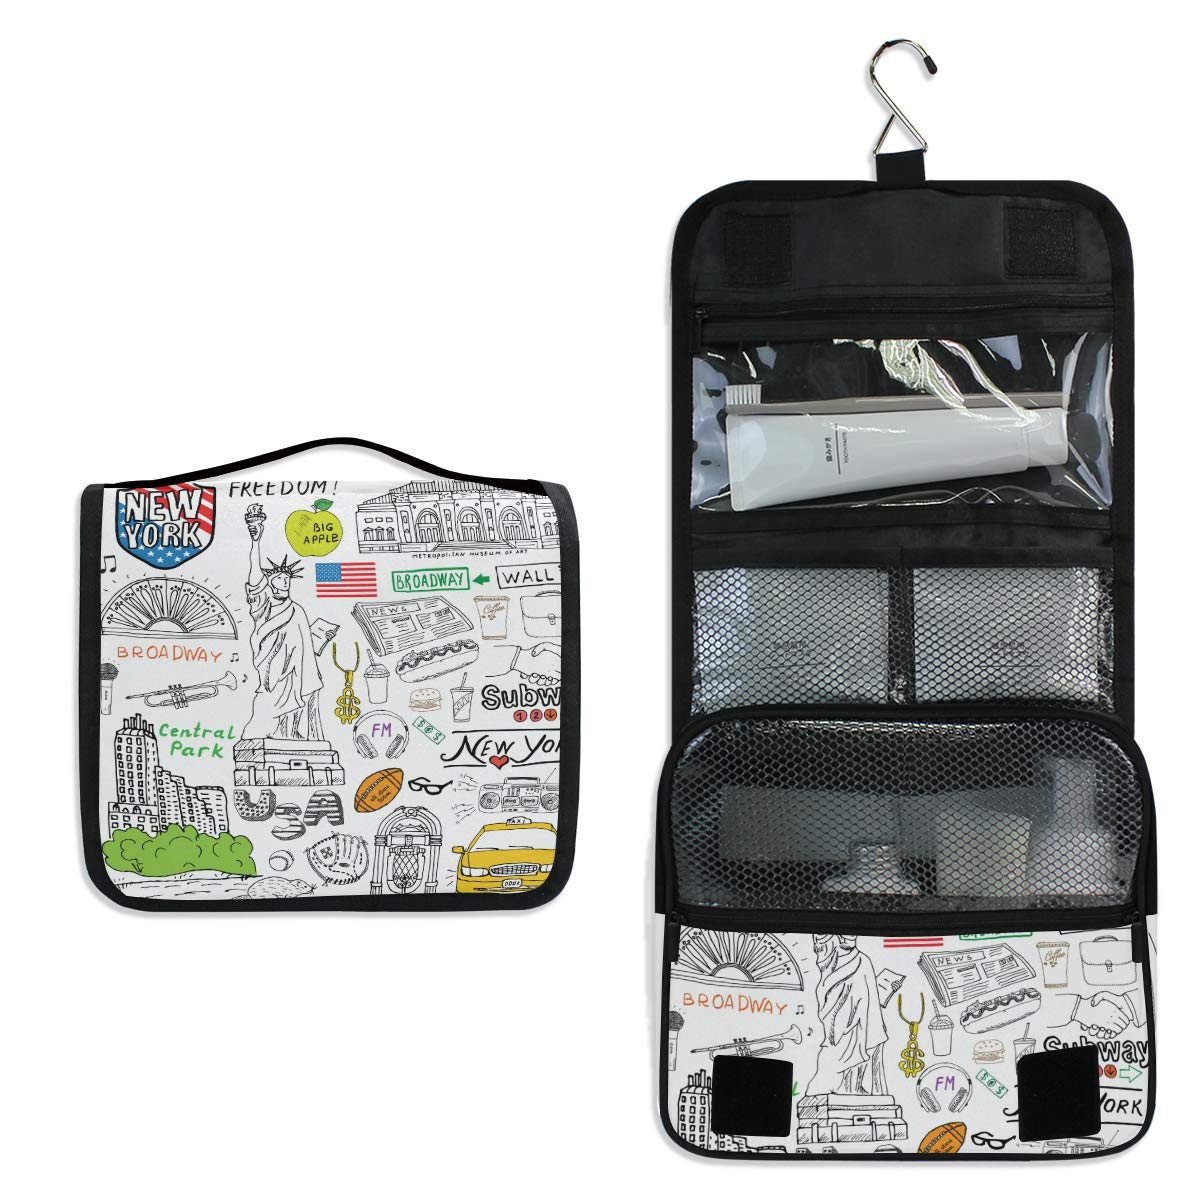 New York Toiletry Bag Multifunction Cosmetic Bag Portable Makeup Pouch Travel Hanging Organizer Bag for Women Girls